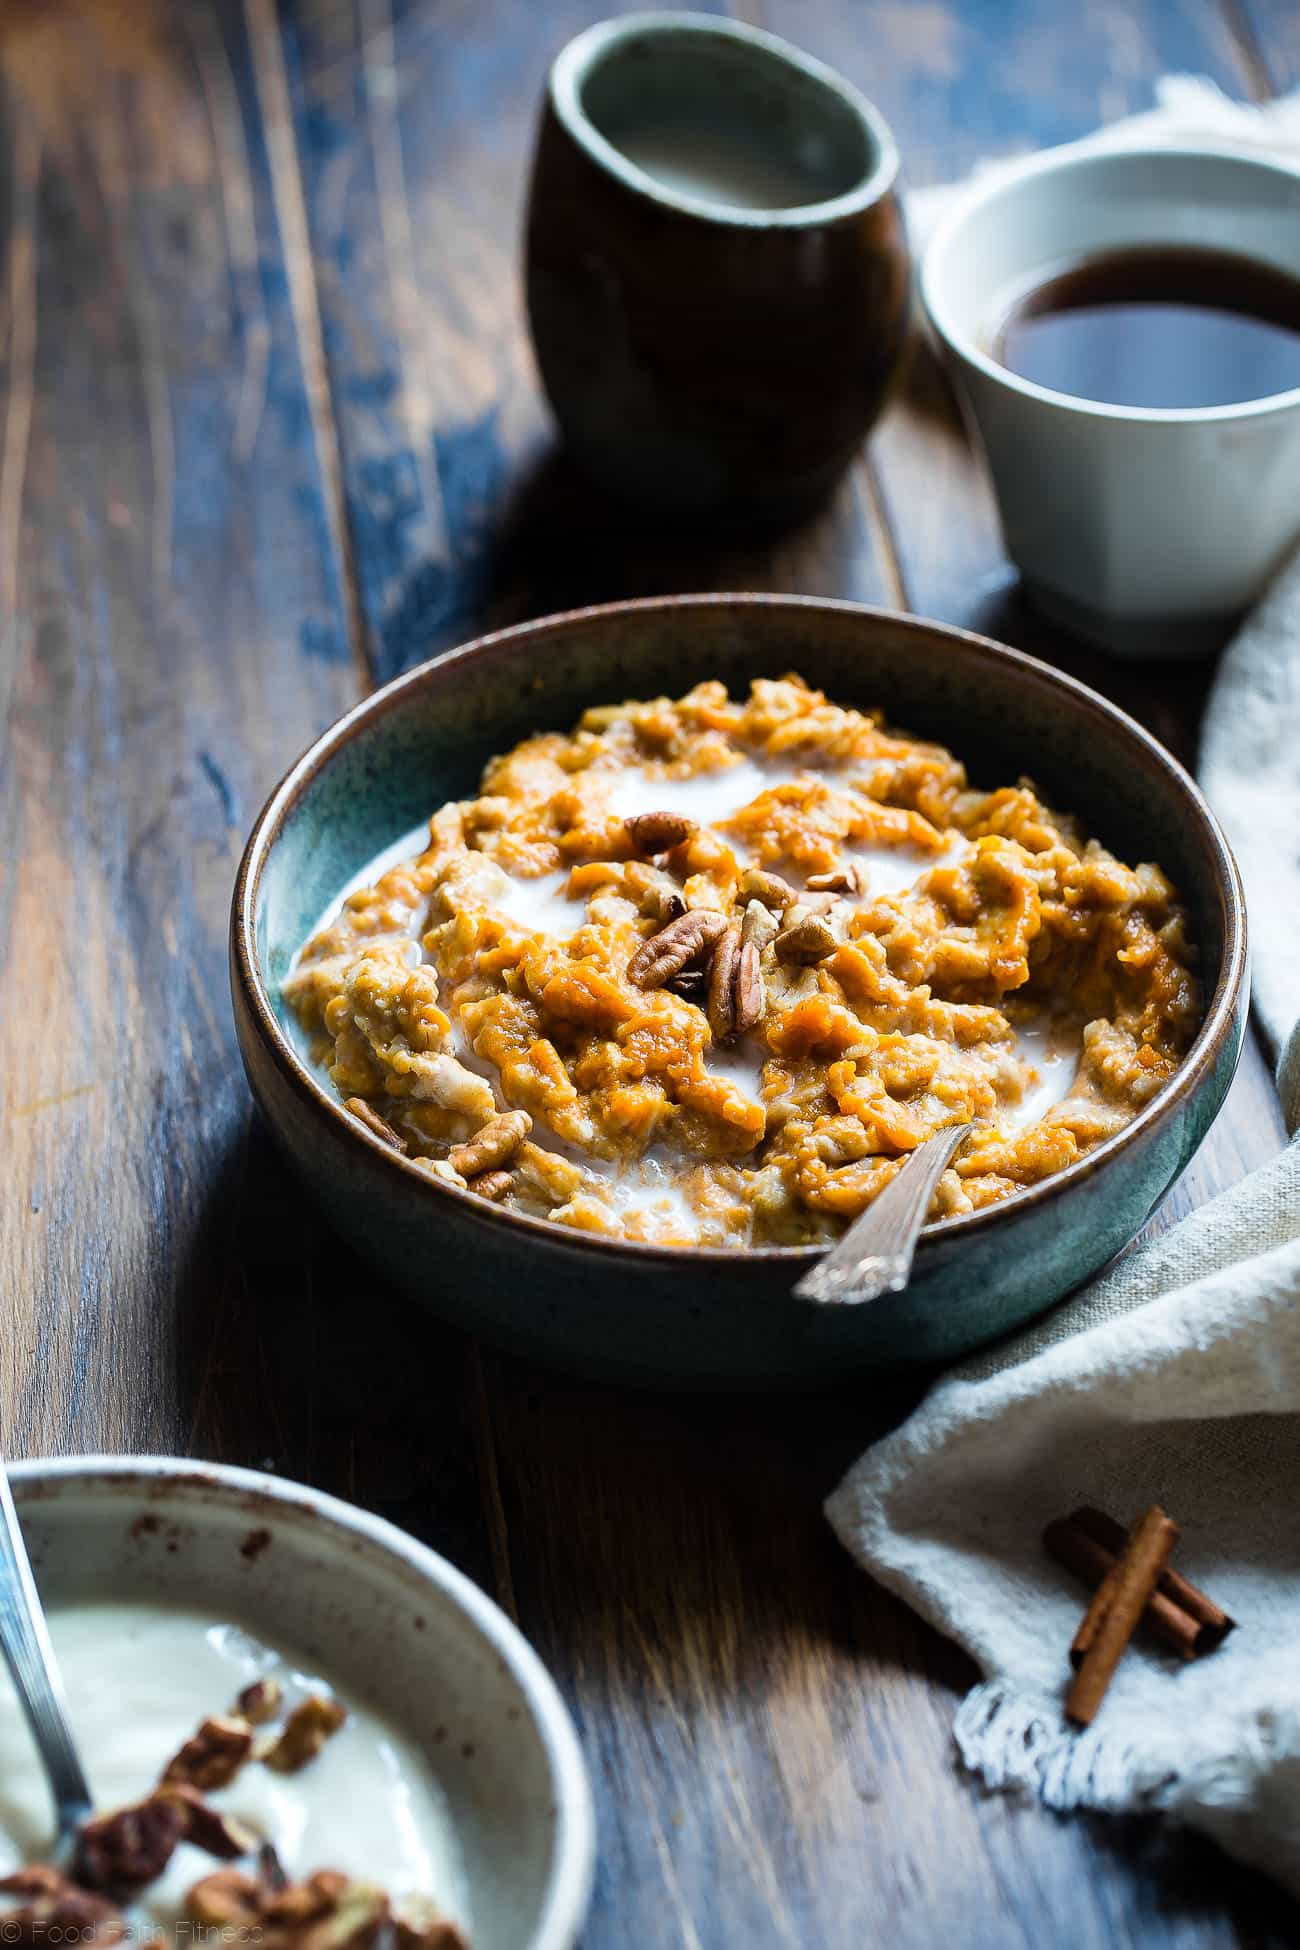 Pumpkin Pie Protein Oatmeal - Tastes like waking up to healthy and gluten free pumpkin pie for breakfast! Ready in 10 minutes, packed with protein and totally kid or adult friendly! Your new favorite breakfast! | Foodfaithfitness.com | @FoodFaithFit